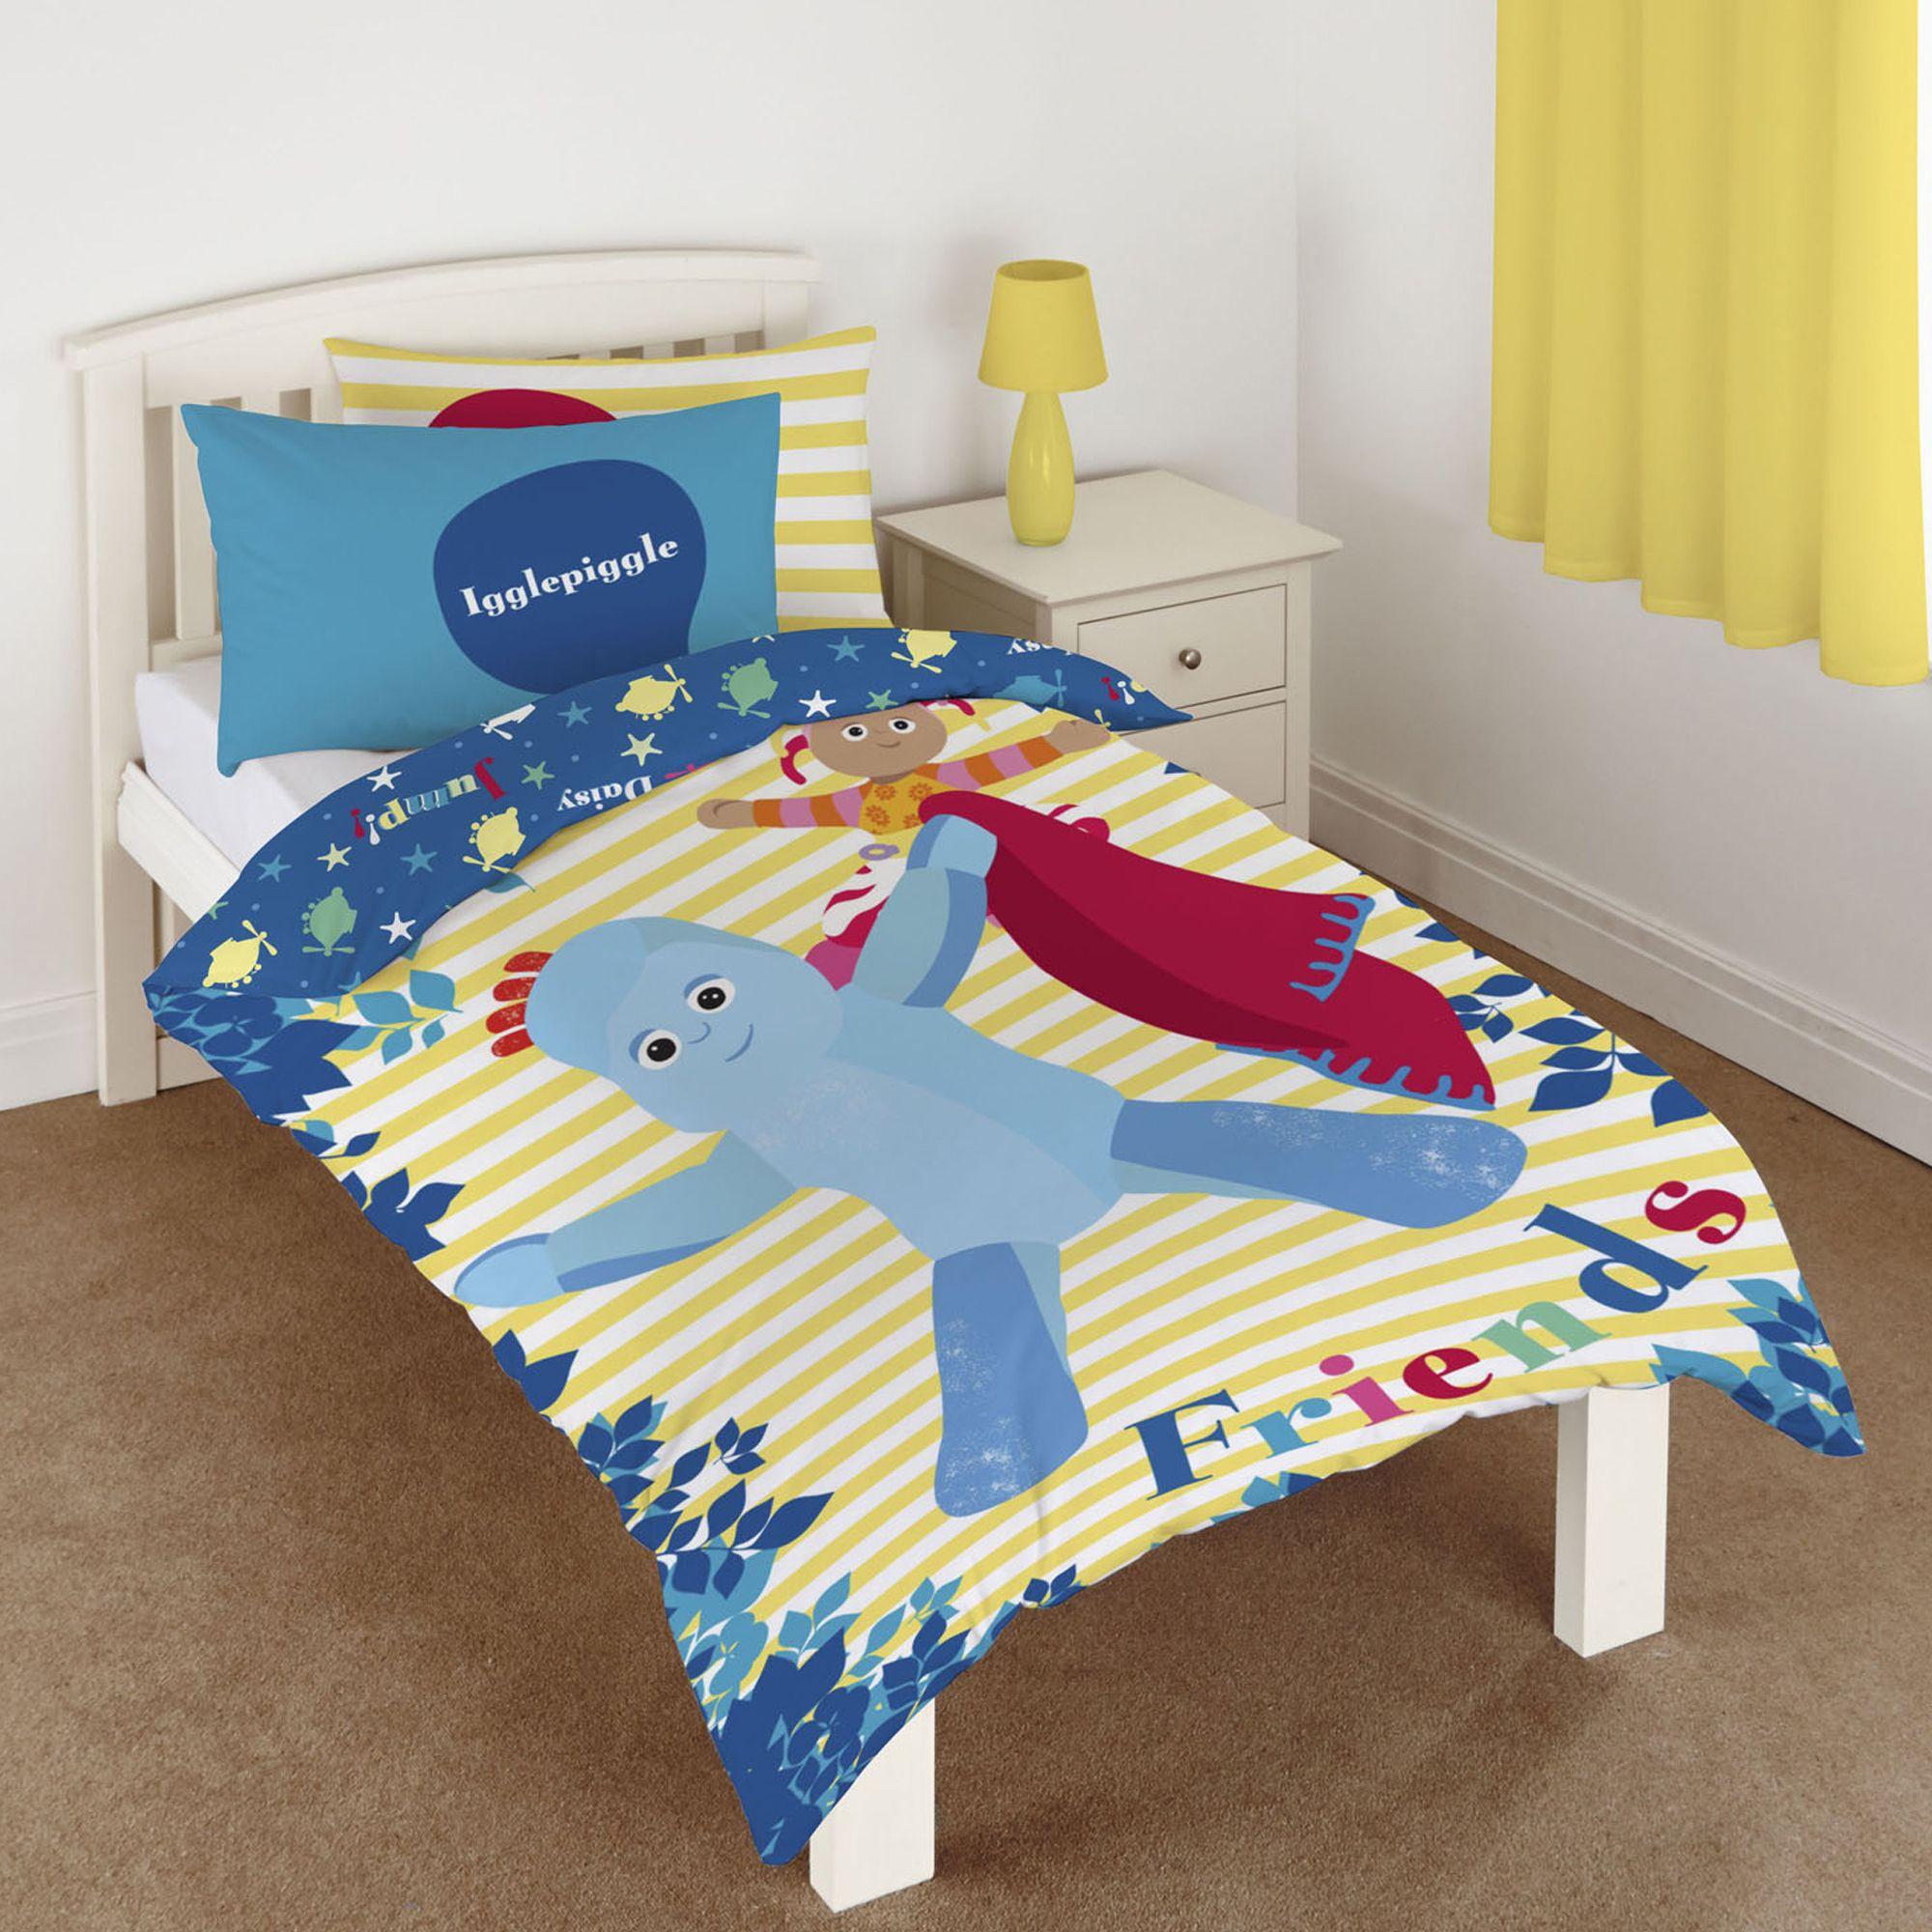 Surprising In The Night Garden Multicolour Single Duvet Set  Departments  With Fascinating In The Night Garden Multicolour Single Duvet Set  Departments  Diy At Bq With Cute In The Night Garden All Songs Also The Garden Of Allah In Addition East Gardens Opening Hours And Garden Centres Liverpool As Well As Allotment Gardening Tips Additionally Chung Ying Garden Birmingham Menu From Diycom With   Fascinating In The Night Garden Multicolour Single Duvet Set  Departments  With Cute In The Night Garden Multicolour Single Duvet Set  Departments  Diy At Bq And Surprising In The Night Garden All Songs Also The Garden Of Allah In Addition East Gardens Opening Hours From Diycom